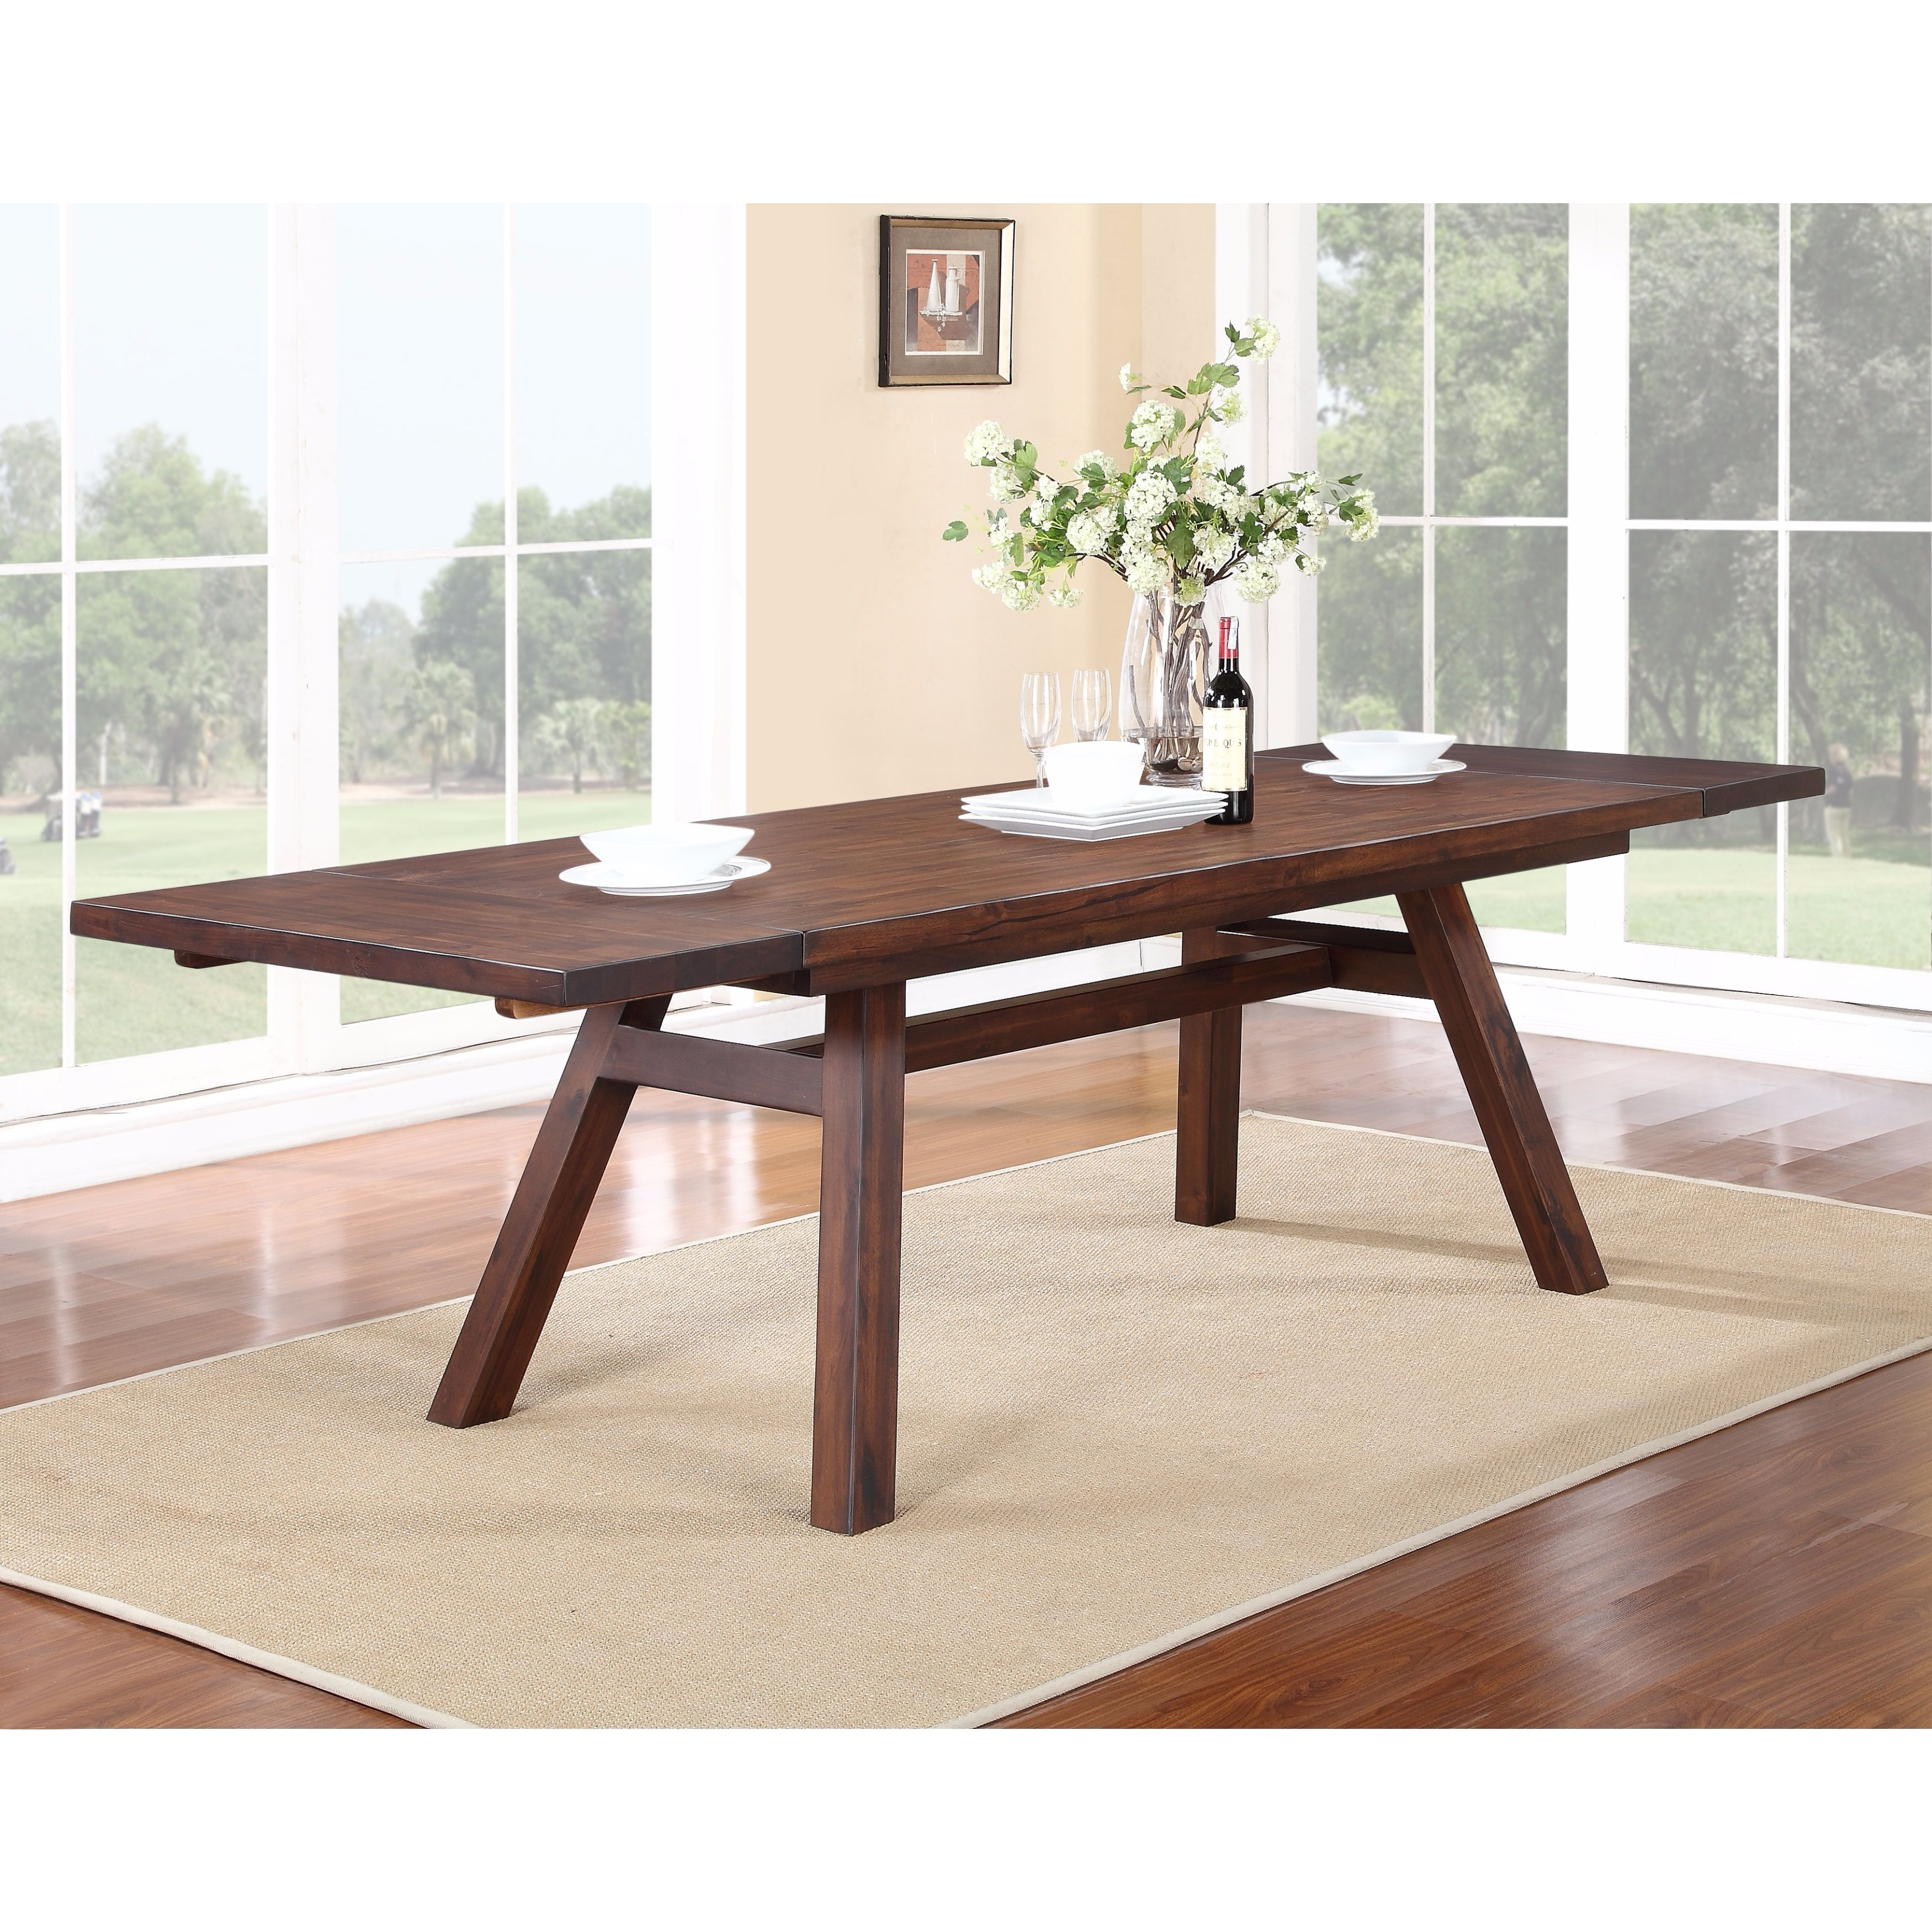 Solid Wood Modern Rectangular Extension Table